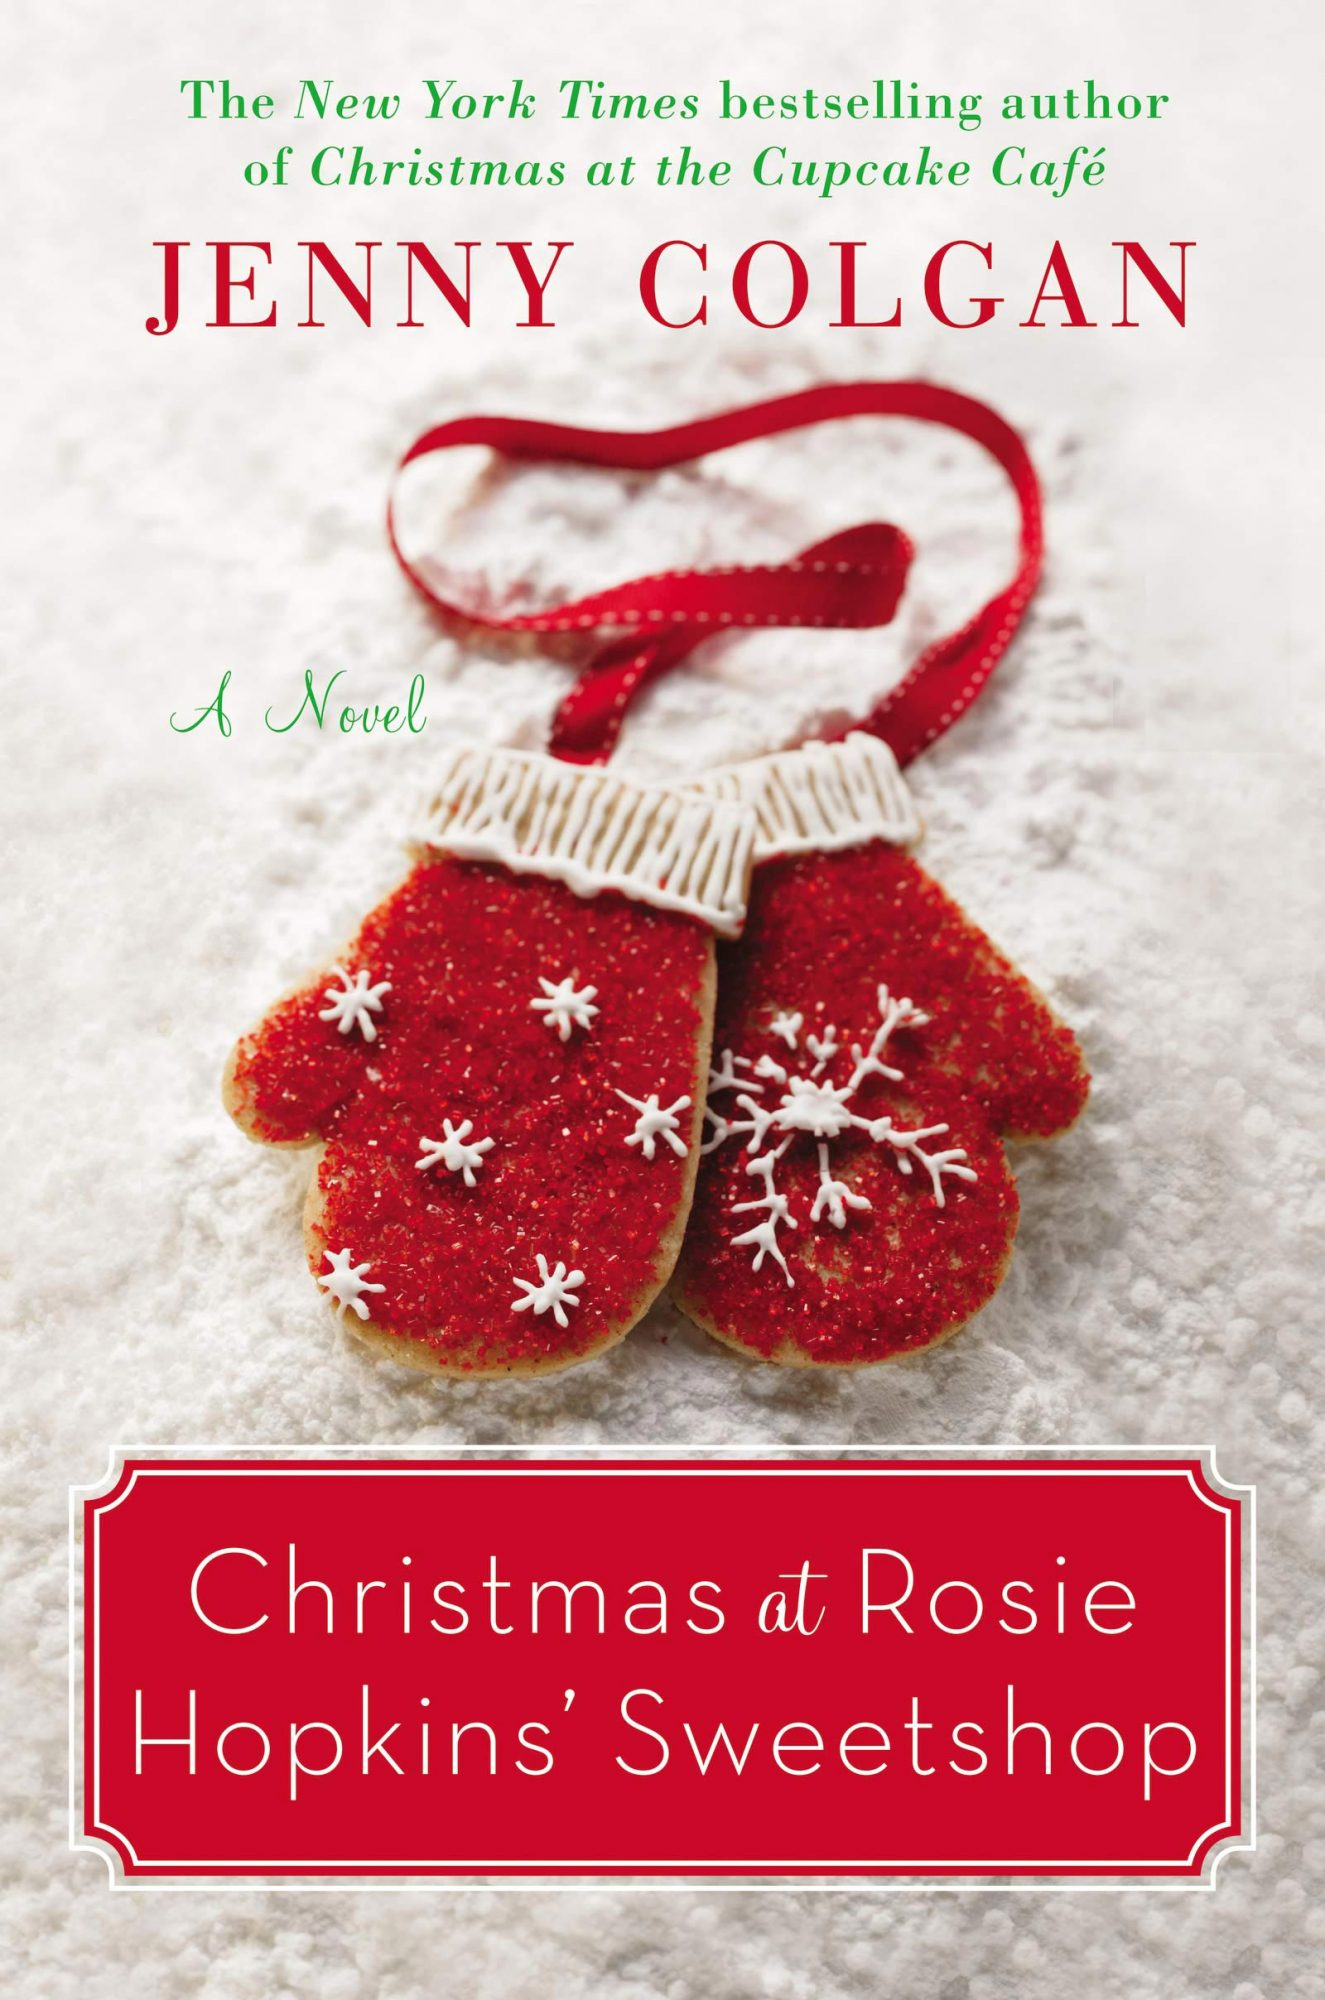 Christmas at Rosie Hopkins' Sweetshop by Jenny ColganPublisher: William Morrow